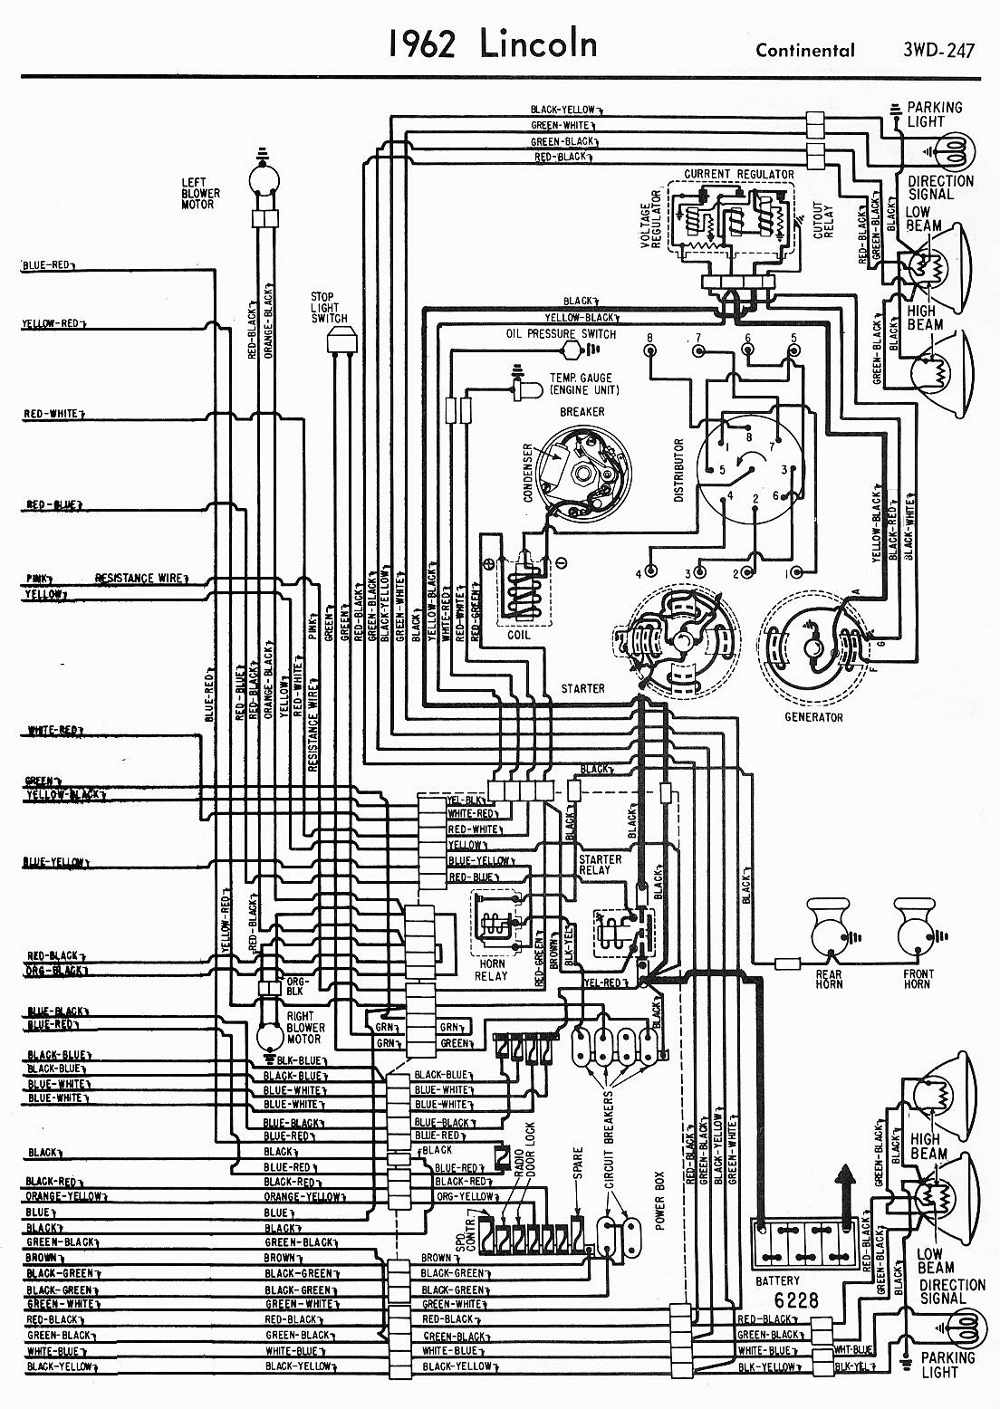 Furnace Wiring Diagram Lincoln Great Installation Of Milnor Diagrams Data Rh 18 8 Reisen Fuer Meister De Gas Hvac